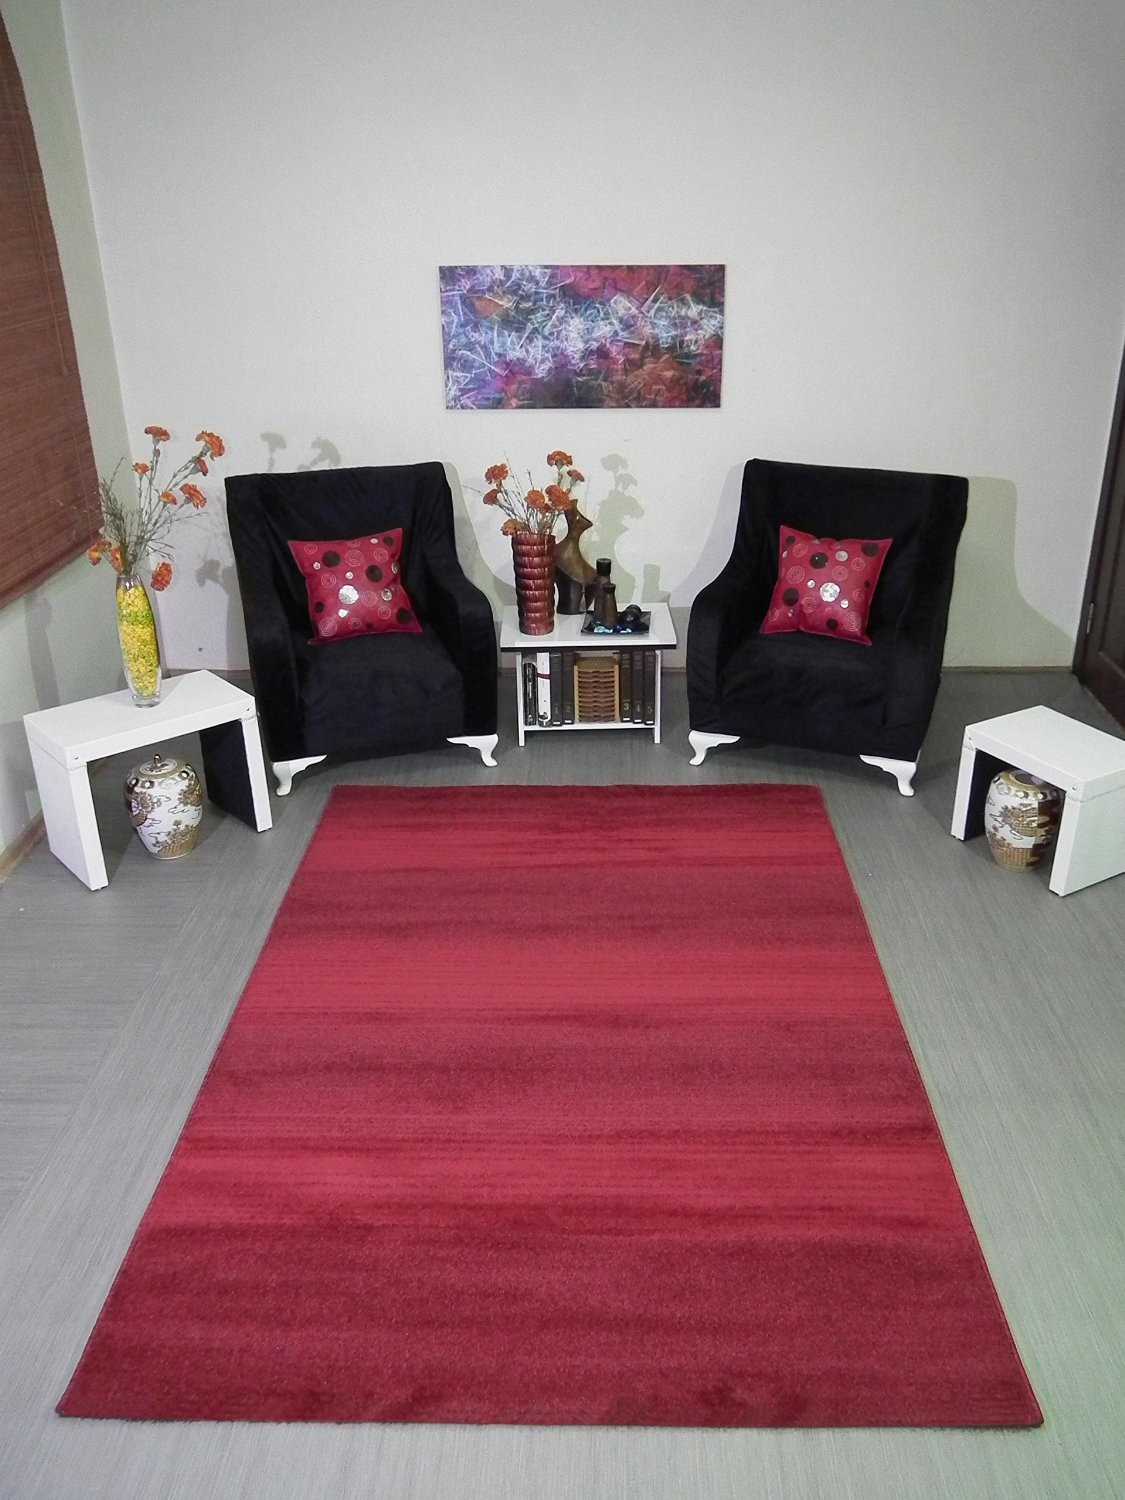 tapis uni orange longues m ches grande salon d 39 entr e couloir aspen. Black Bedroom Furniture Sets. Home Design Ideas